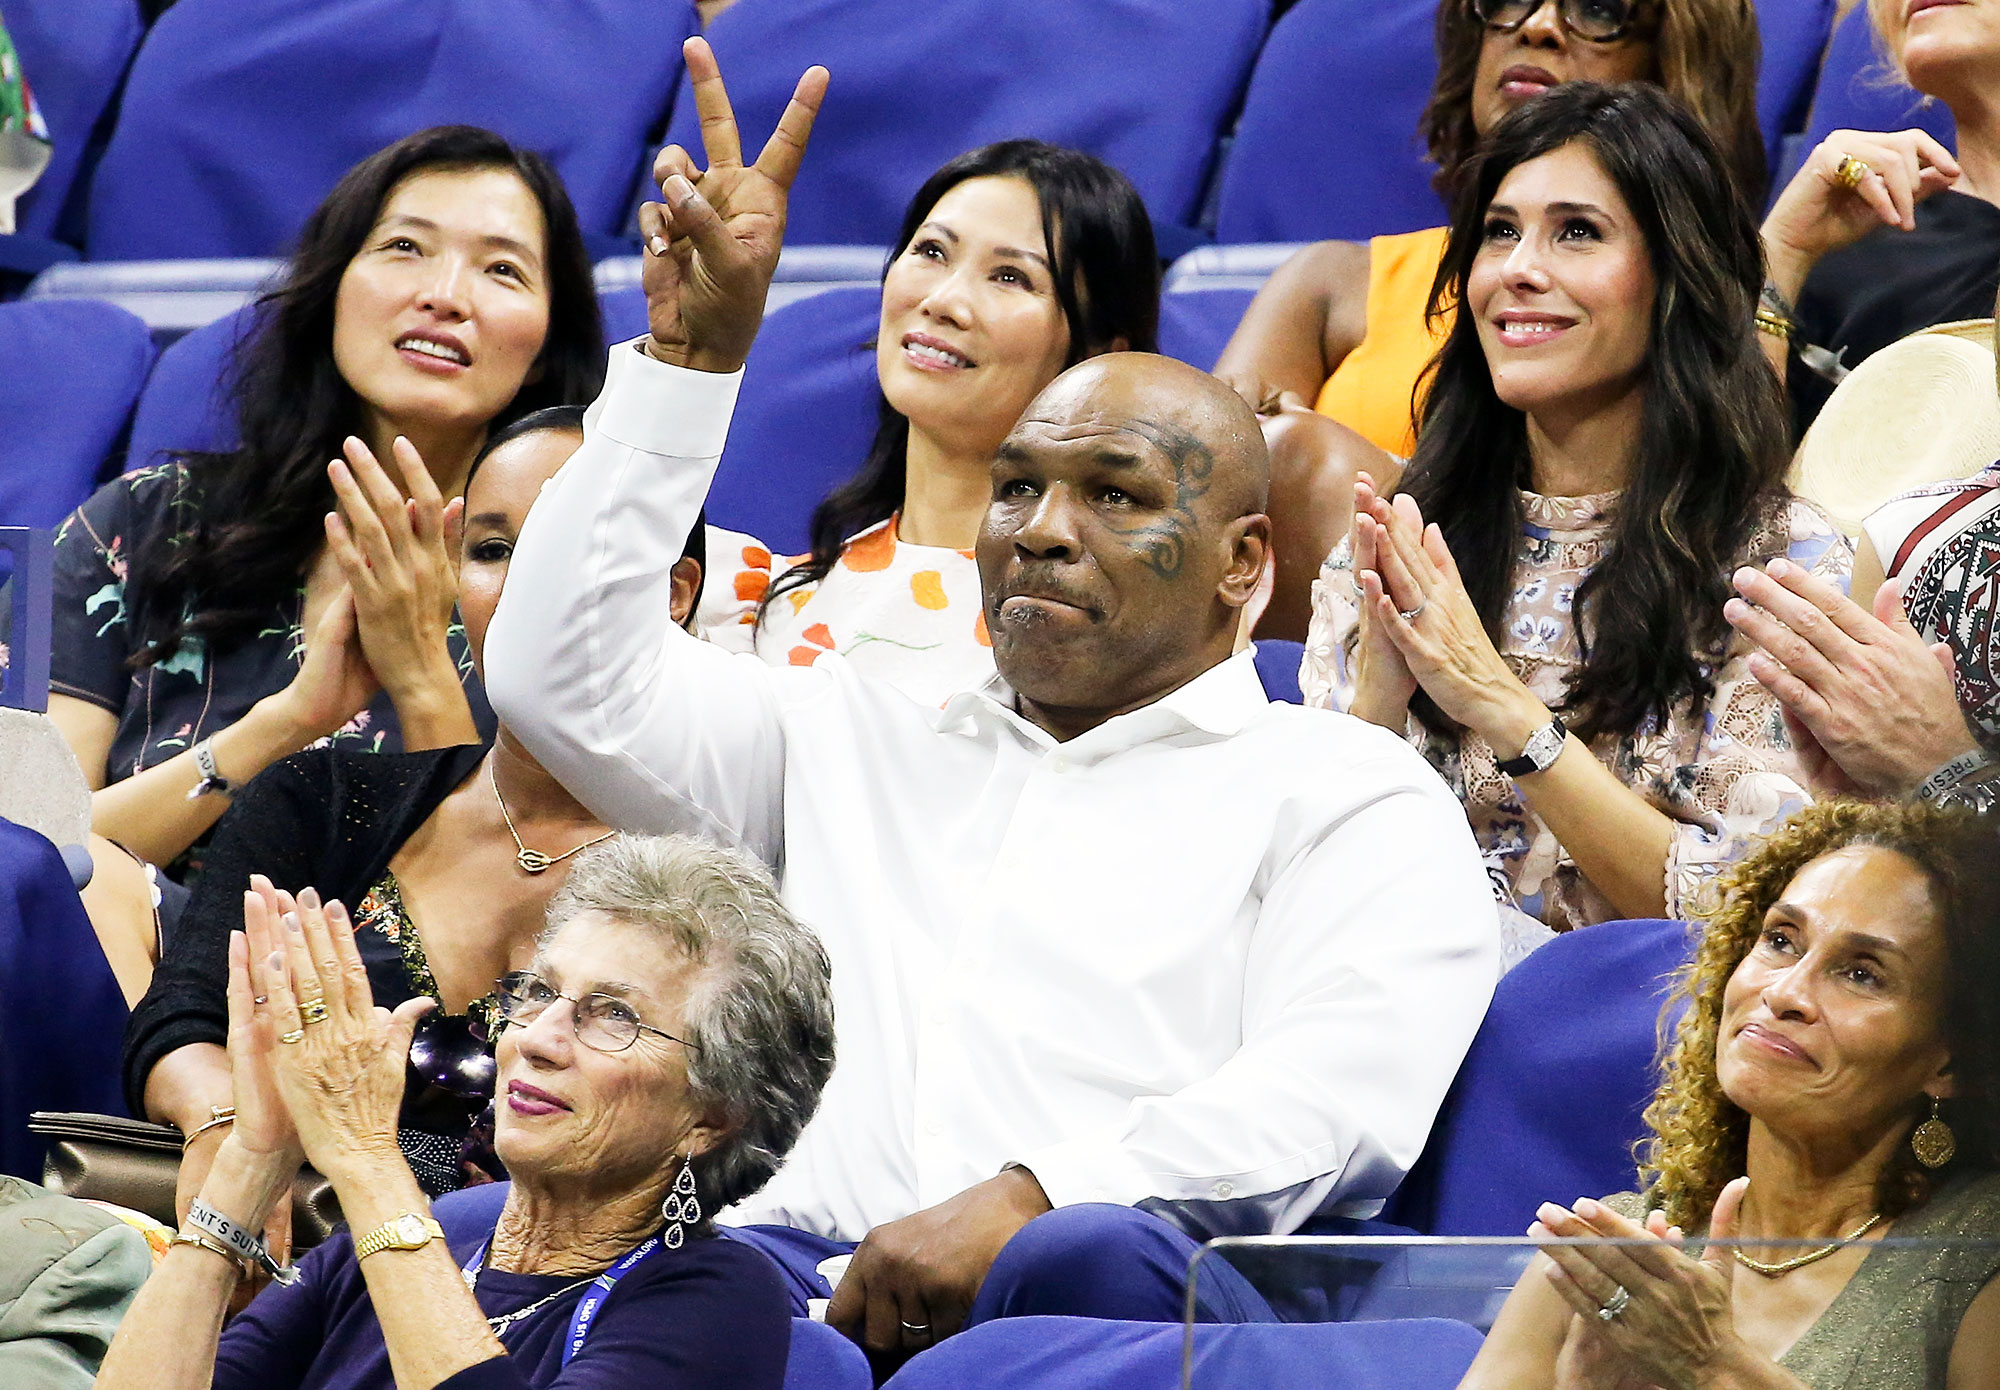 Mike Tyson Us Open 2018 - The boxer threw up a peace sign as he attended the opening night gala on August 27.